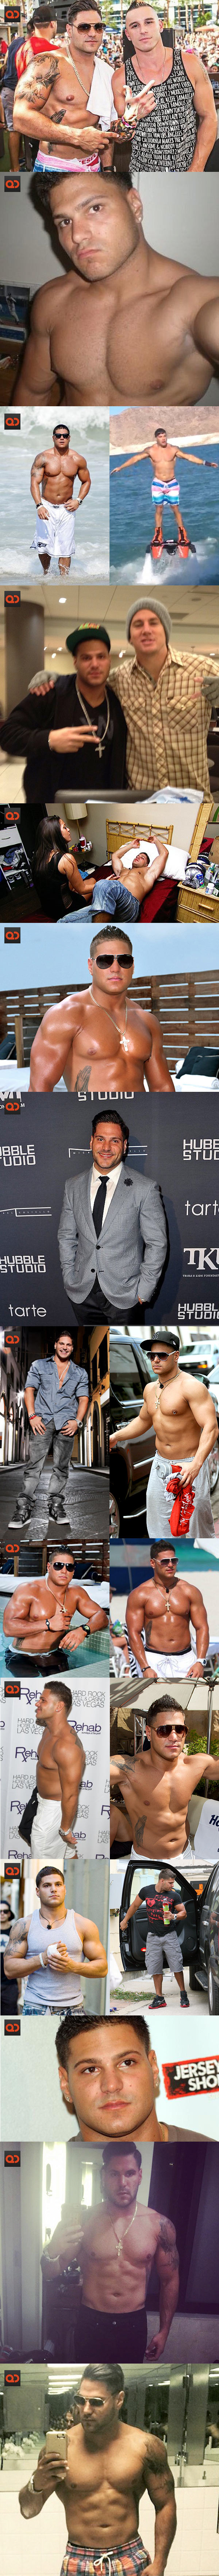 Ronnie Ortiz-Magro, From MTV'S Jersey Shore, Alleged Video Of His Cock Surfaces!